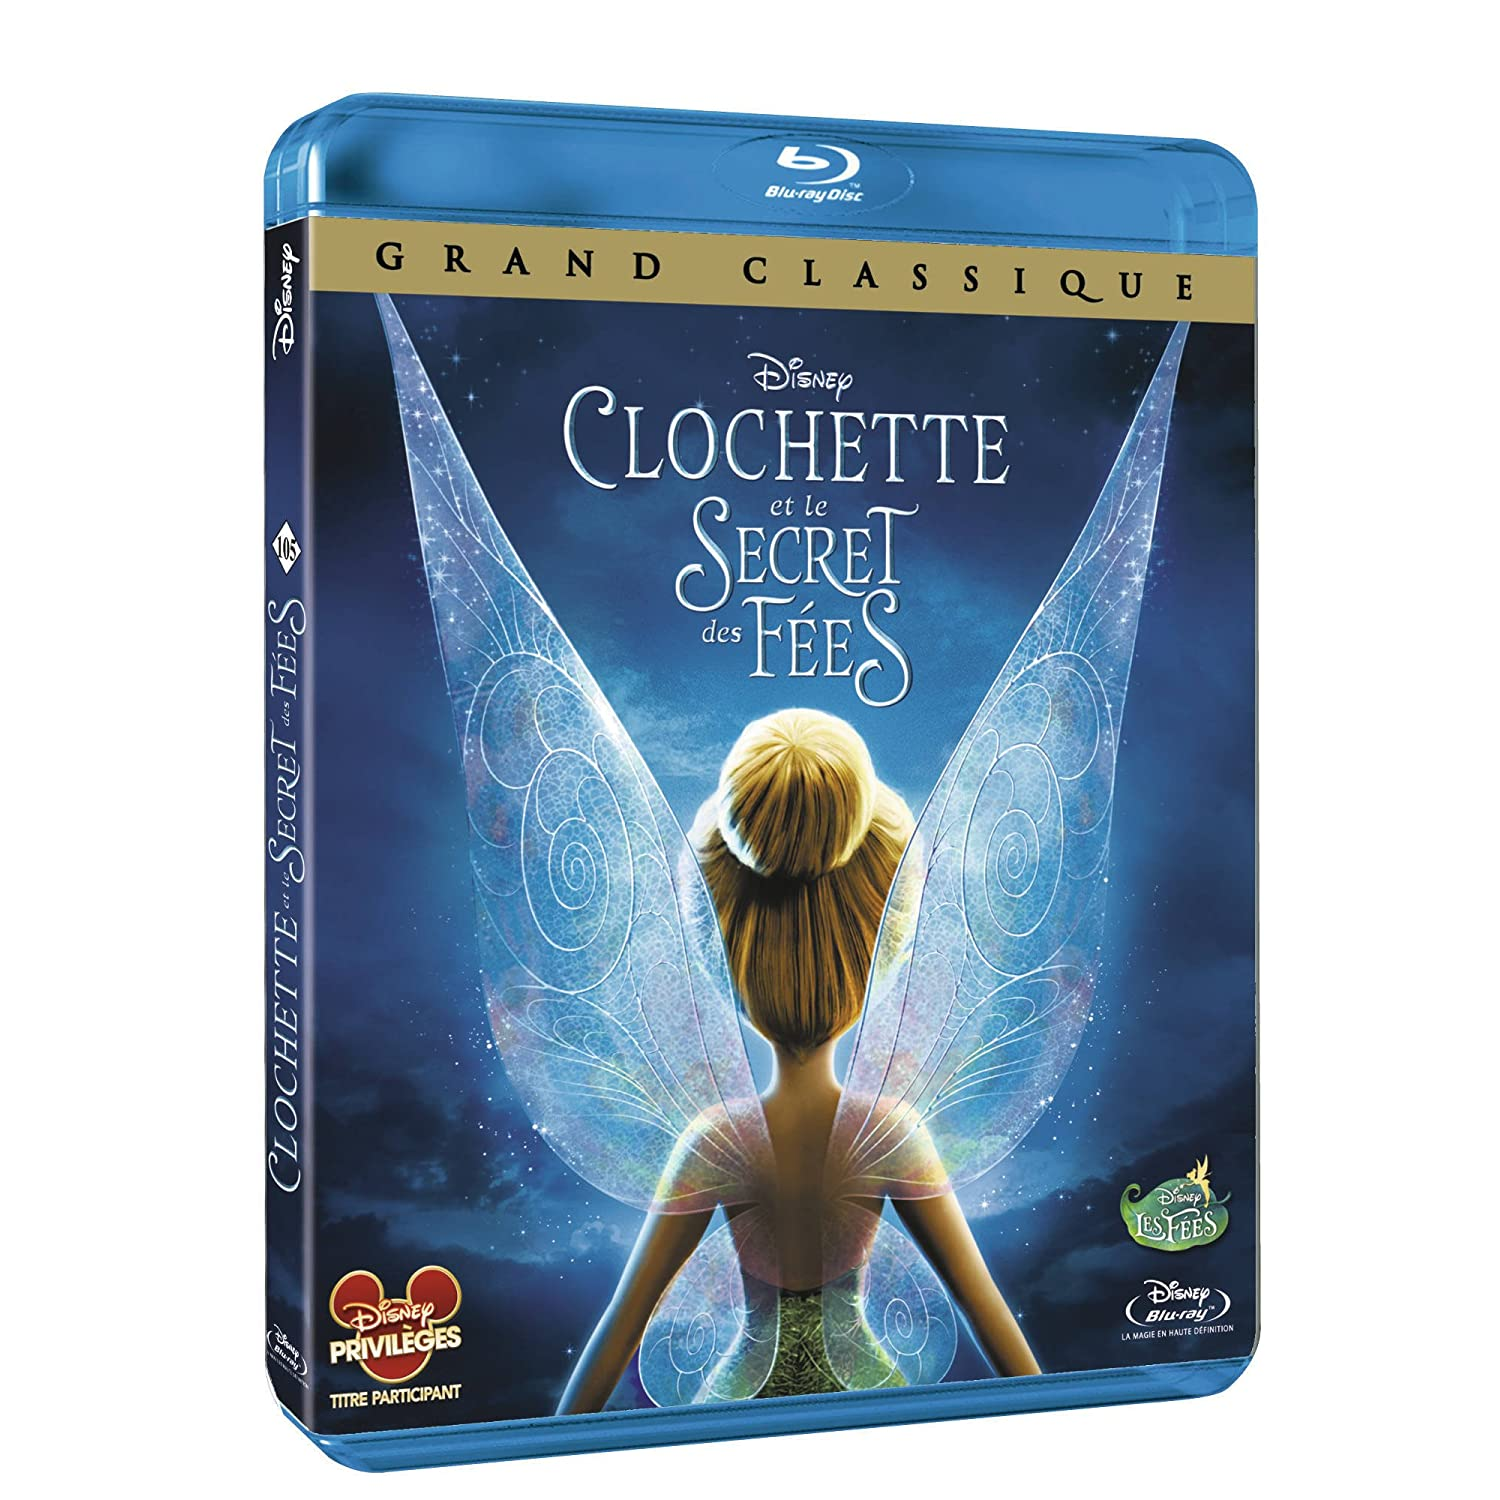 Les jaquettes DVD et Blu-ray des futurs Disney - Page 4 81FQ9oEYdUL._AA1500_